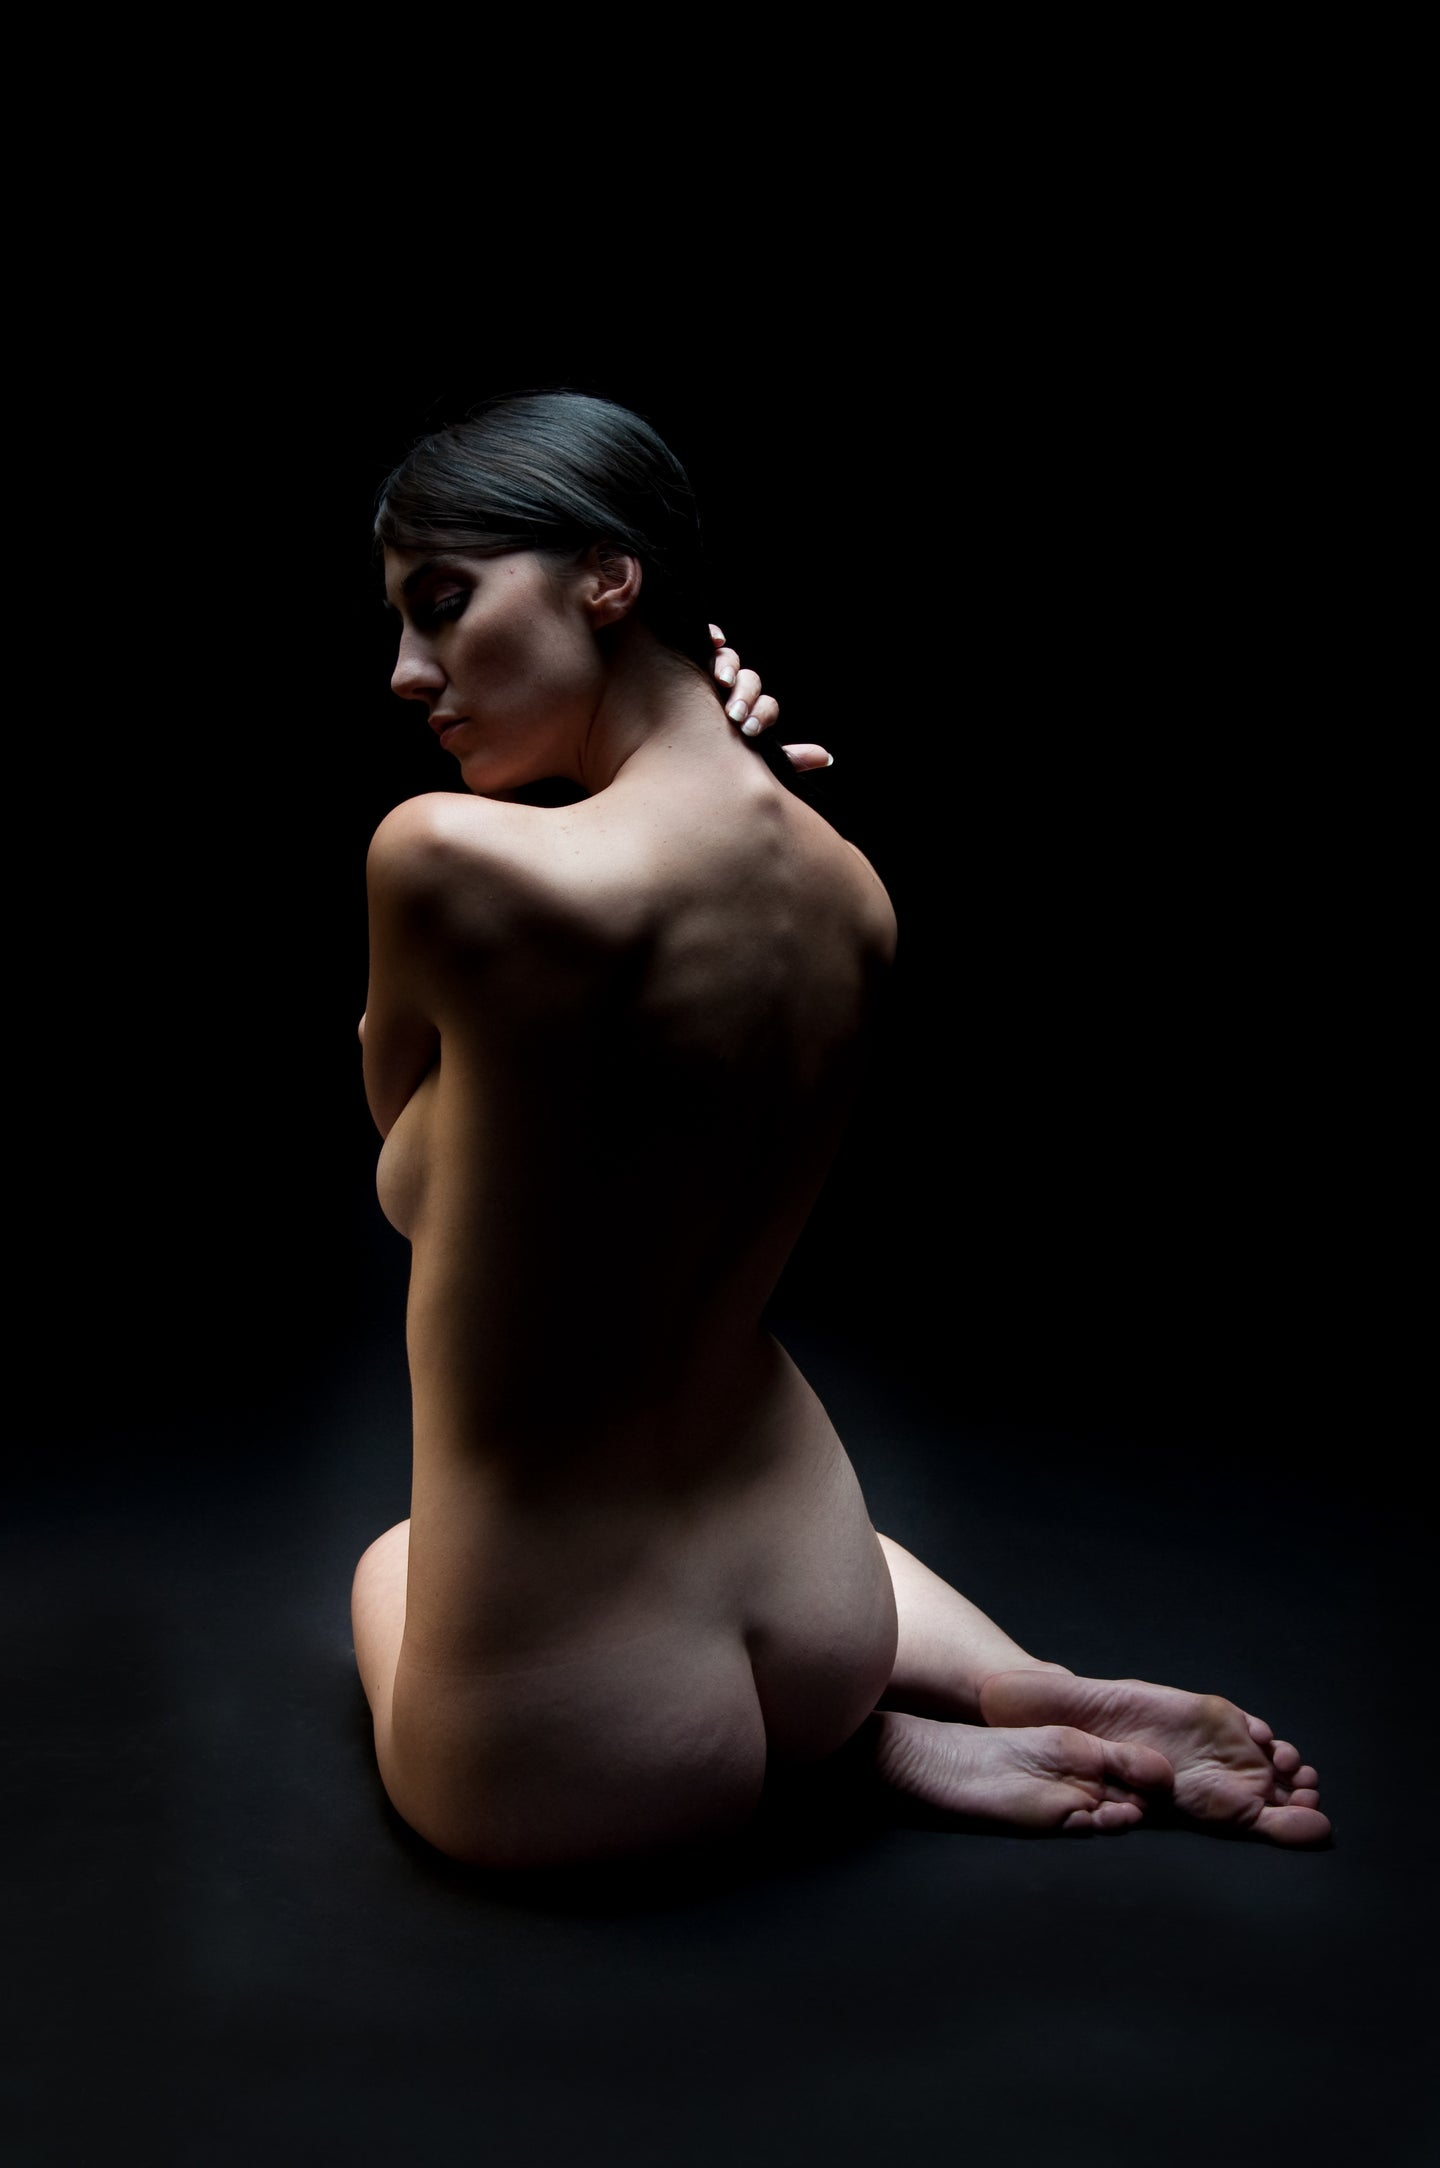 Classic Fine Art Nude, Intrigue - Tracy McCrackin Photography